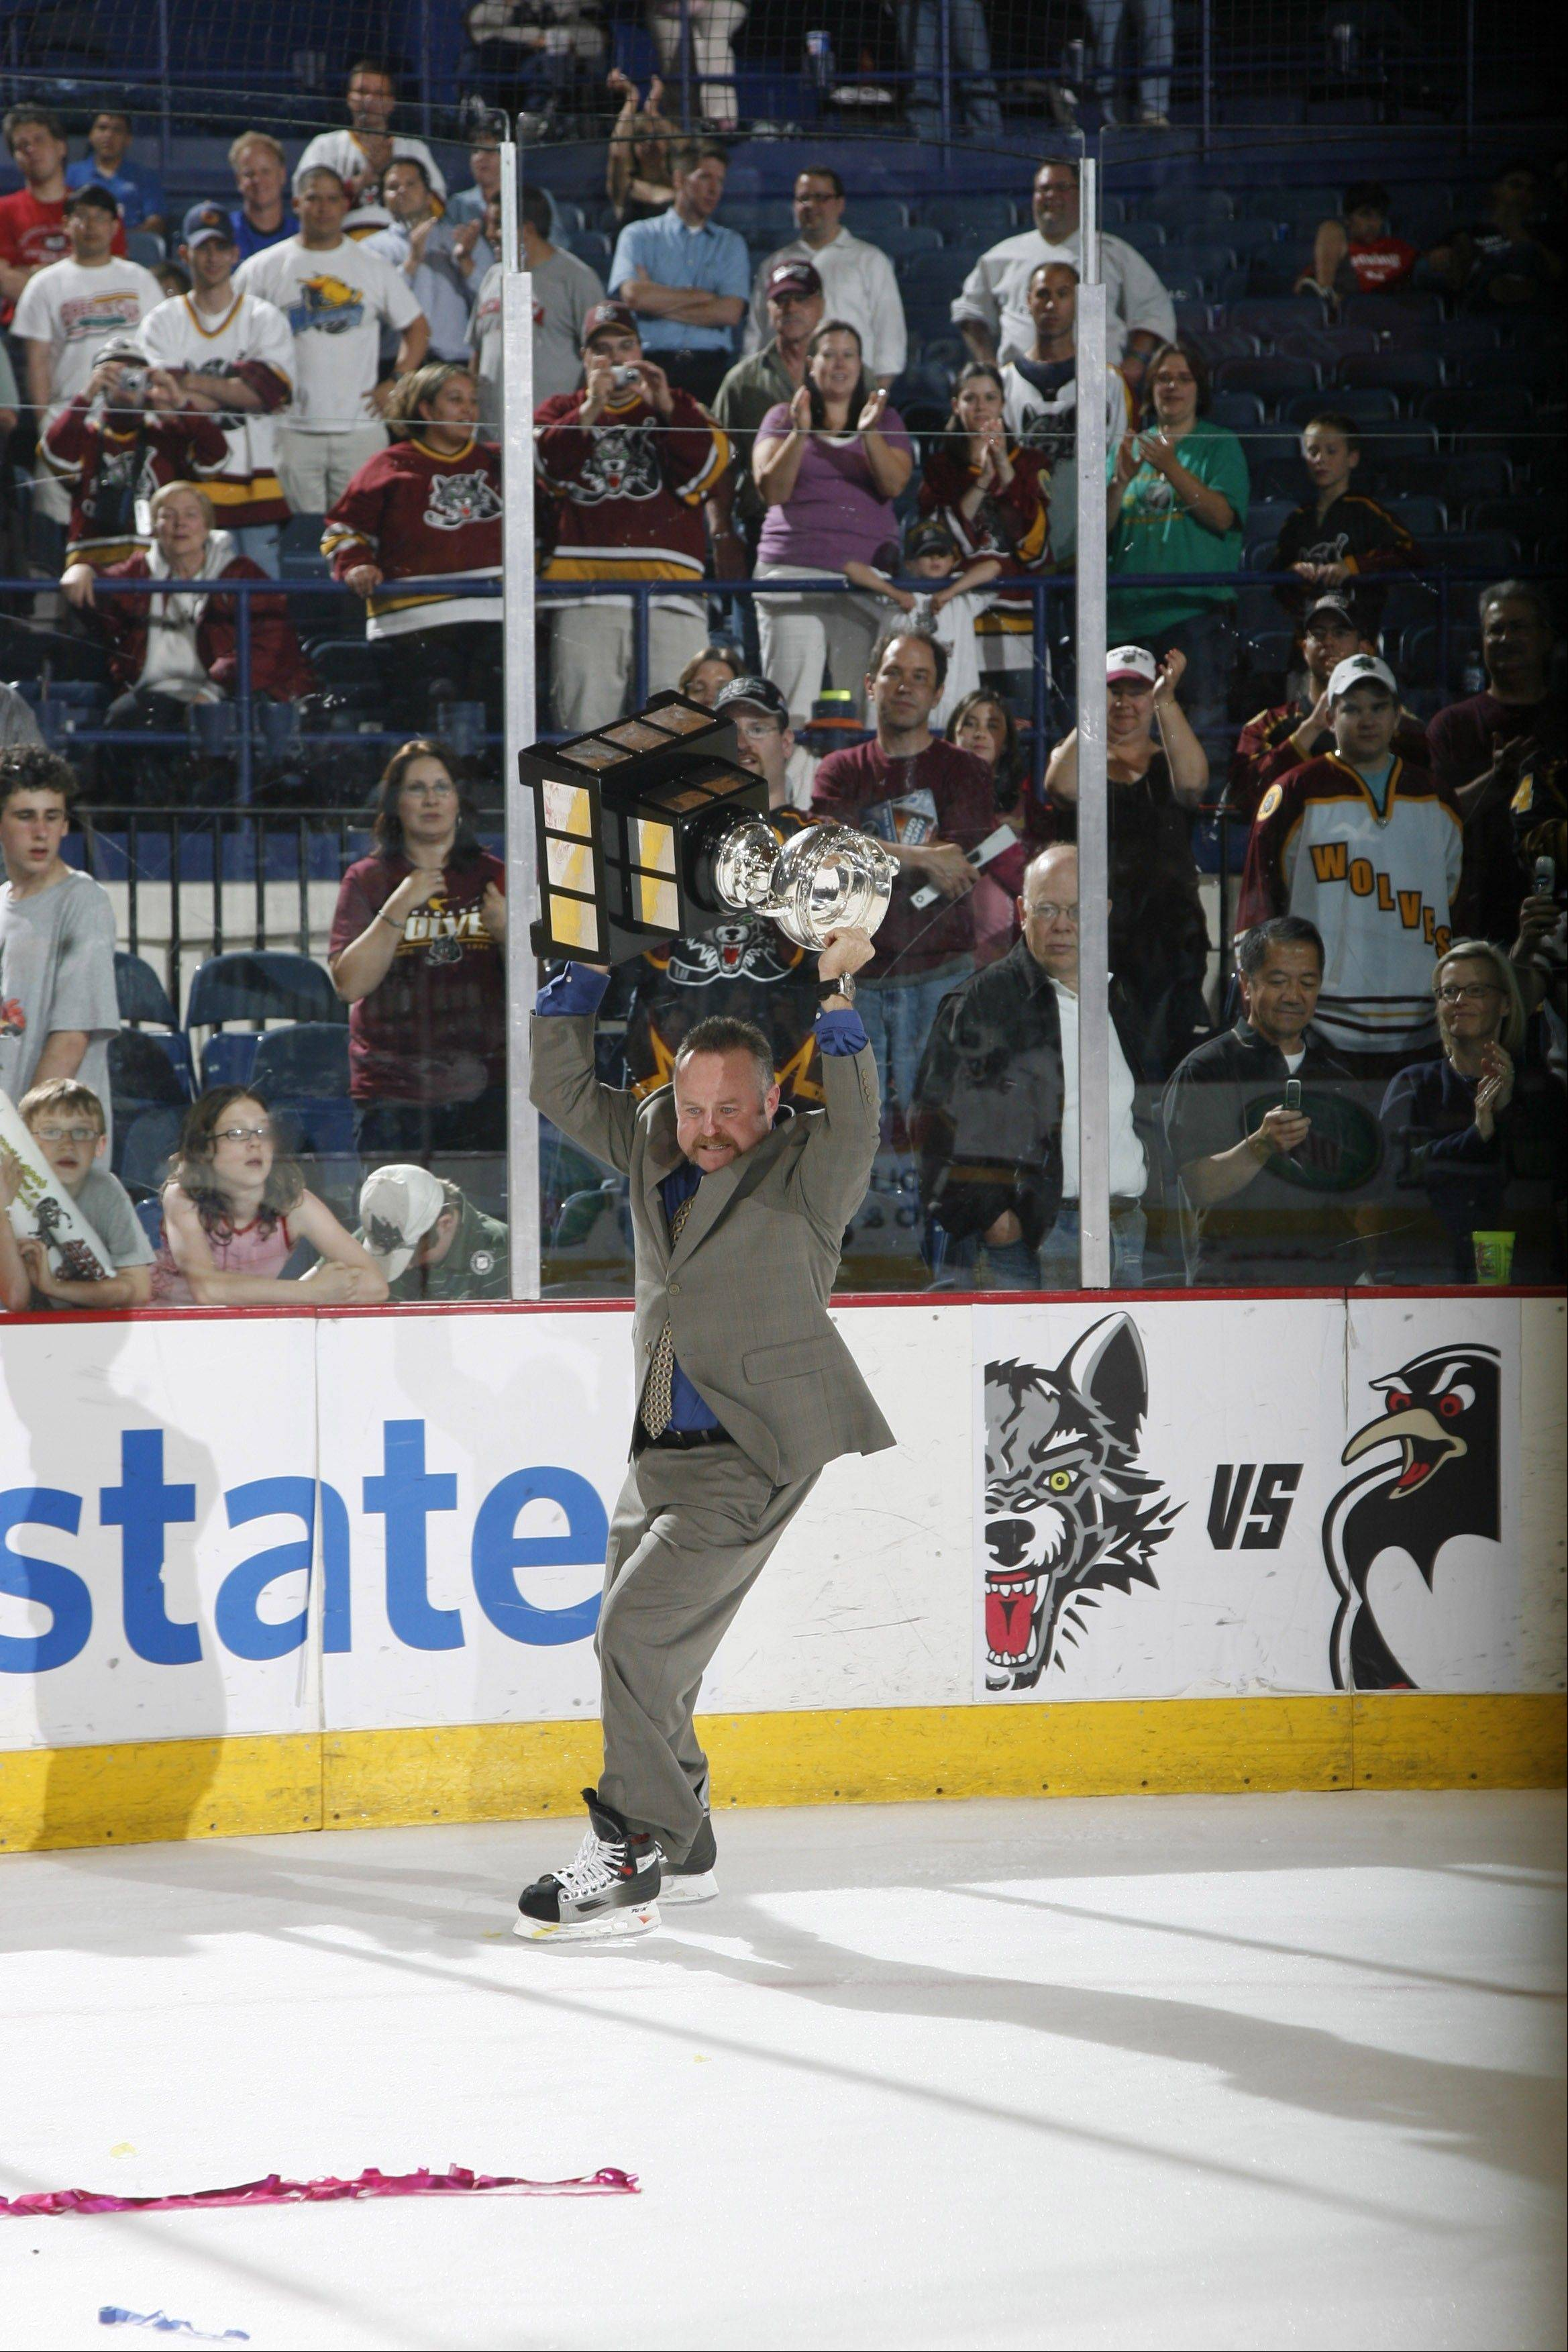 Kenny McCudden of the Chicago Wolves hoists the 2008 Calder Cup after the Wolves beat the Wilkes-Barre/Scranton Penguins at Allstate Arena to capture it.